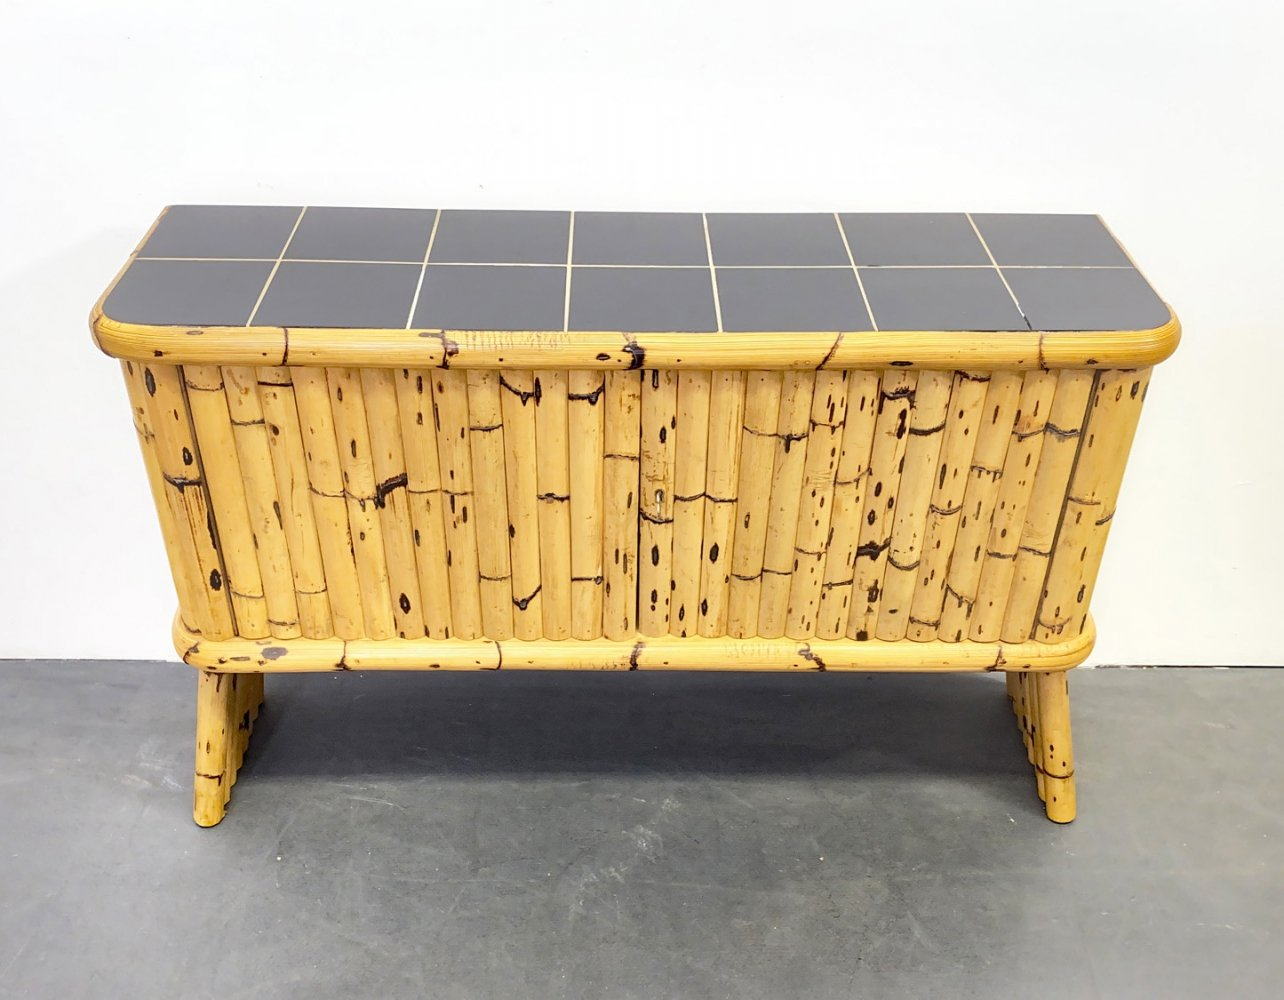 Mid Century Bamboo Sideboard with Black Ceramic Tiles, France 1950s